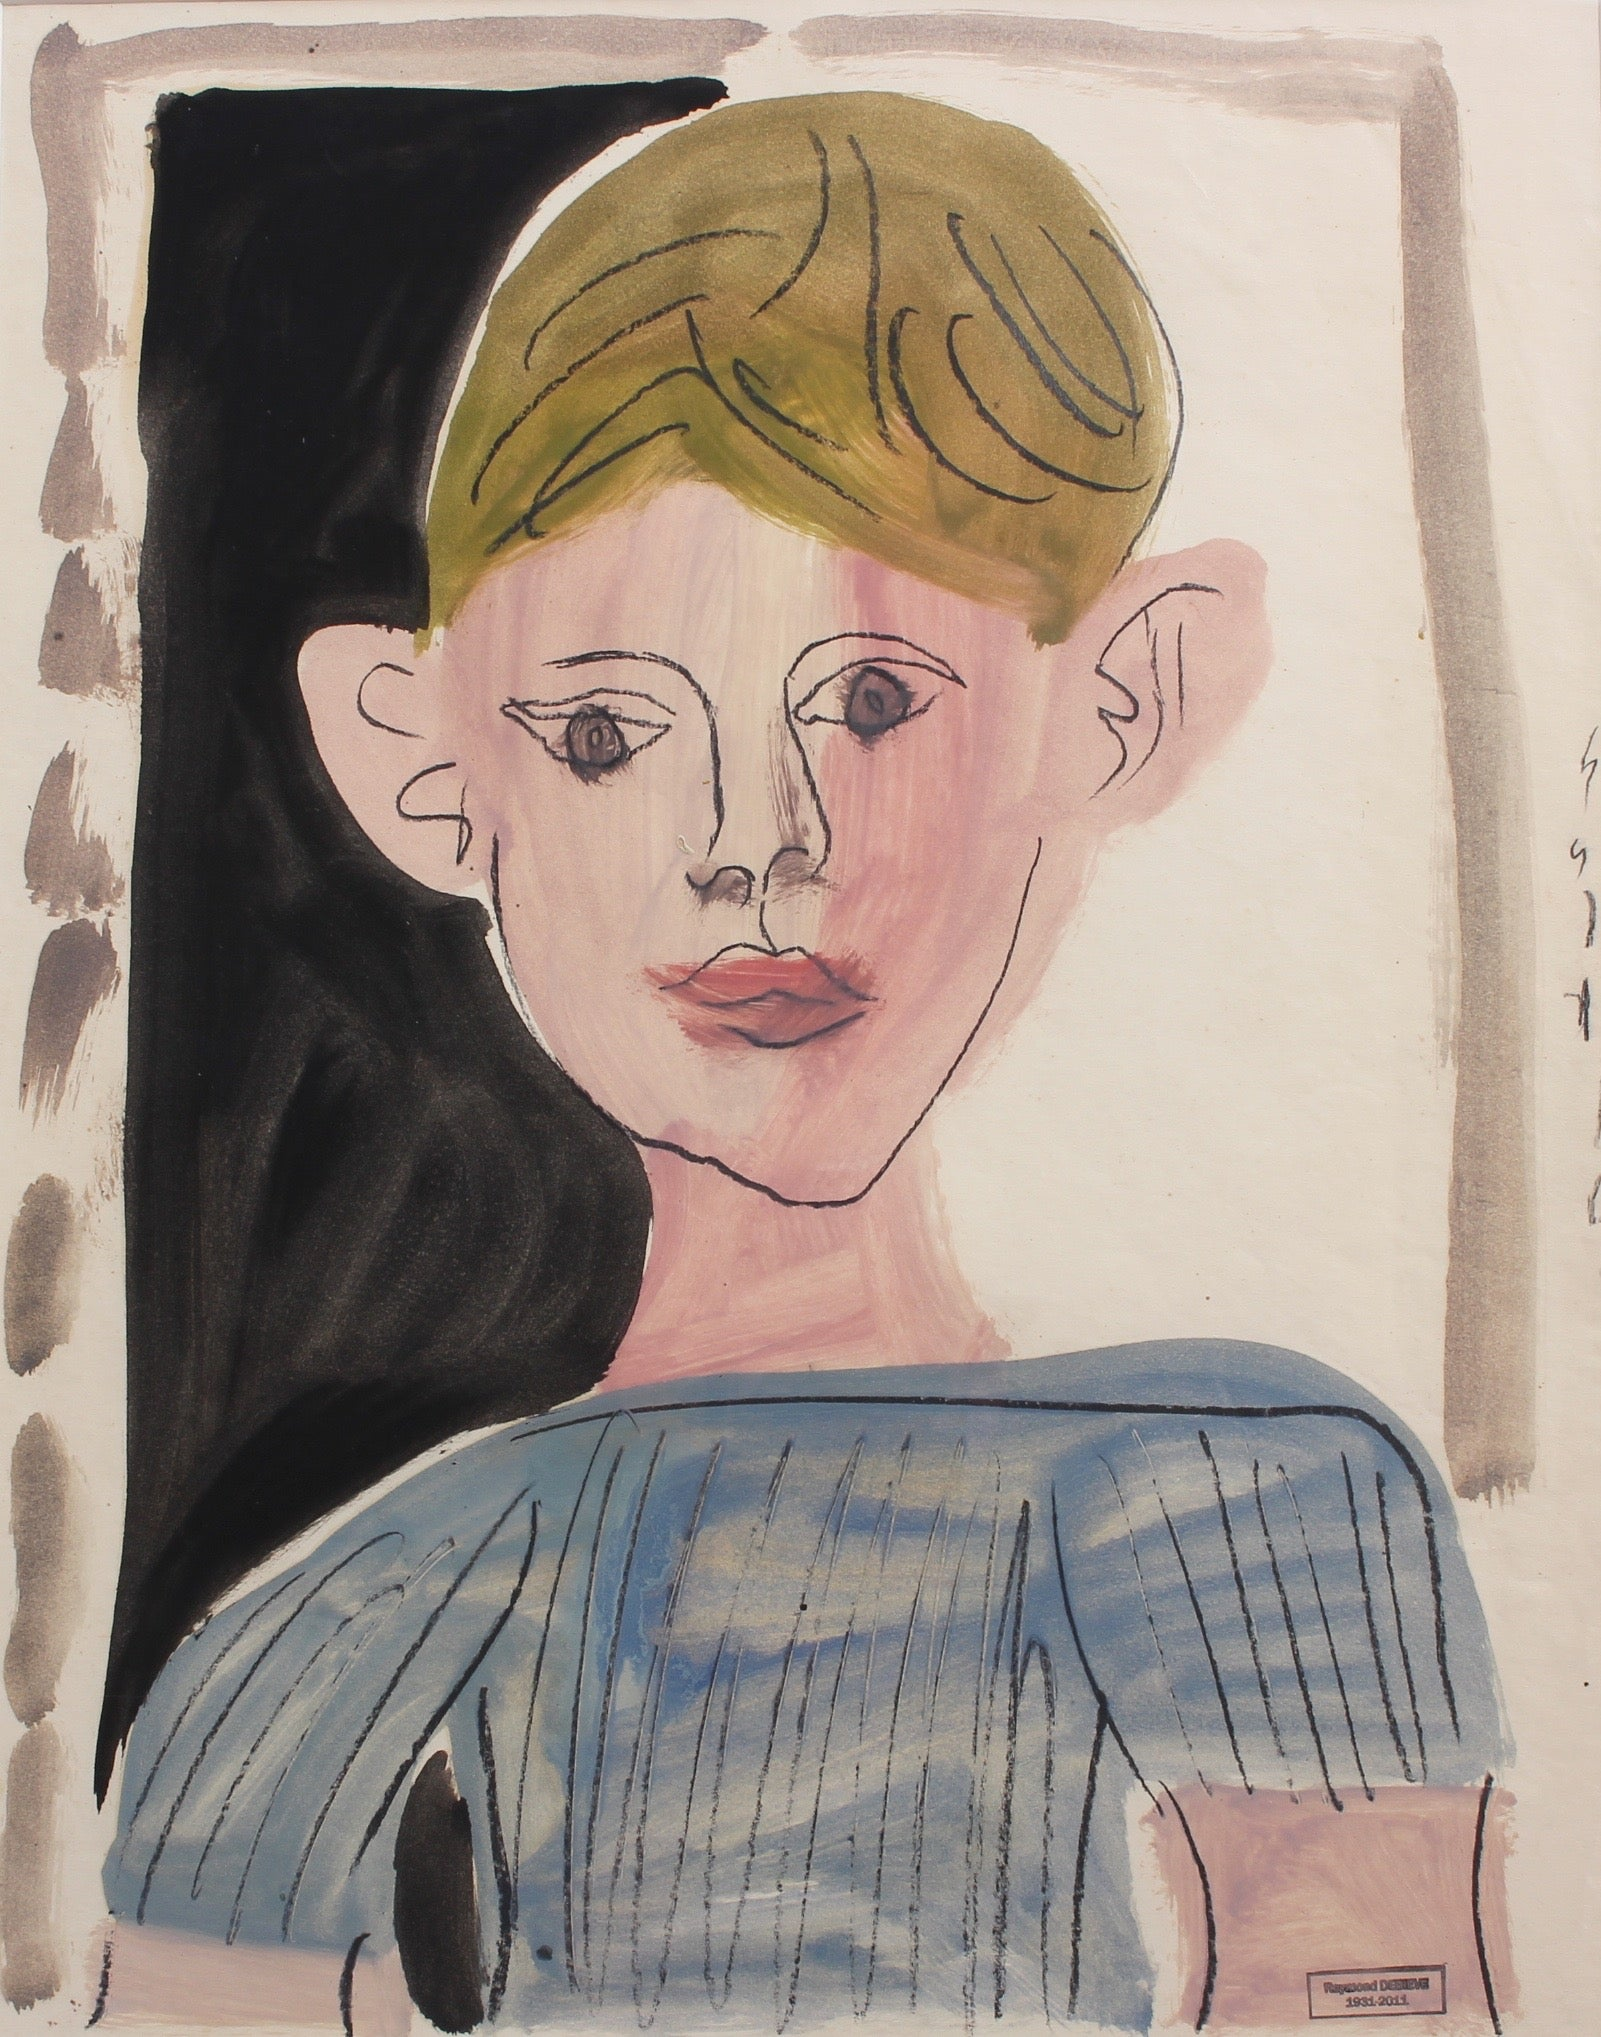 'Portrait of a Young Boy' by Raymond Dèbieve (circa 1960s)